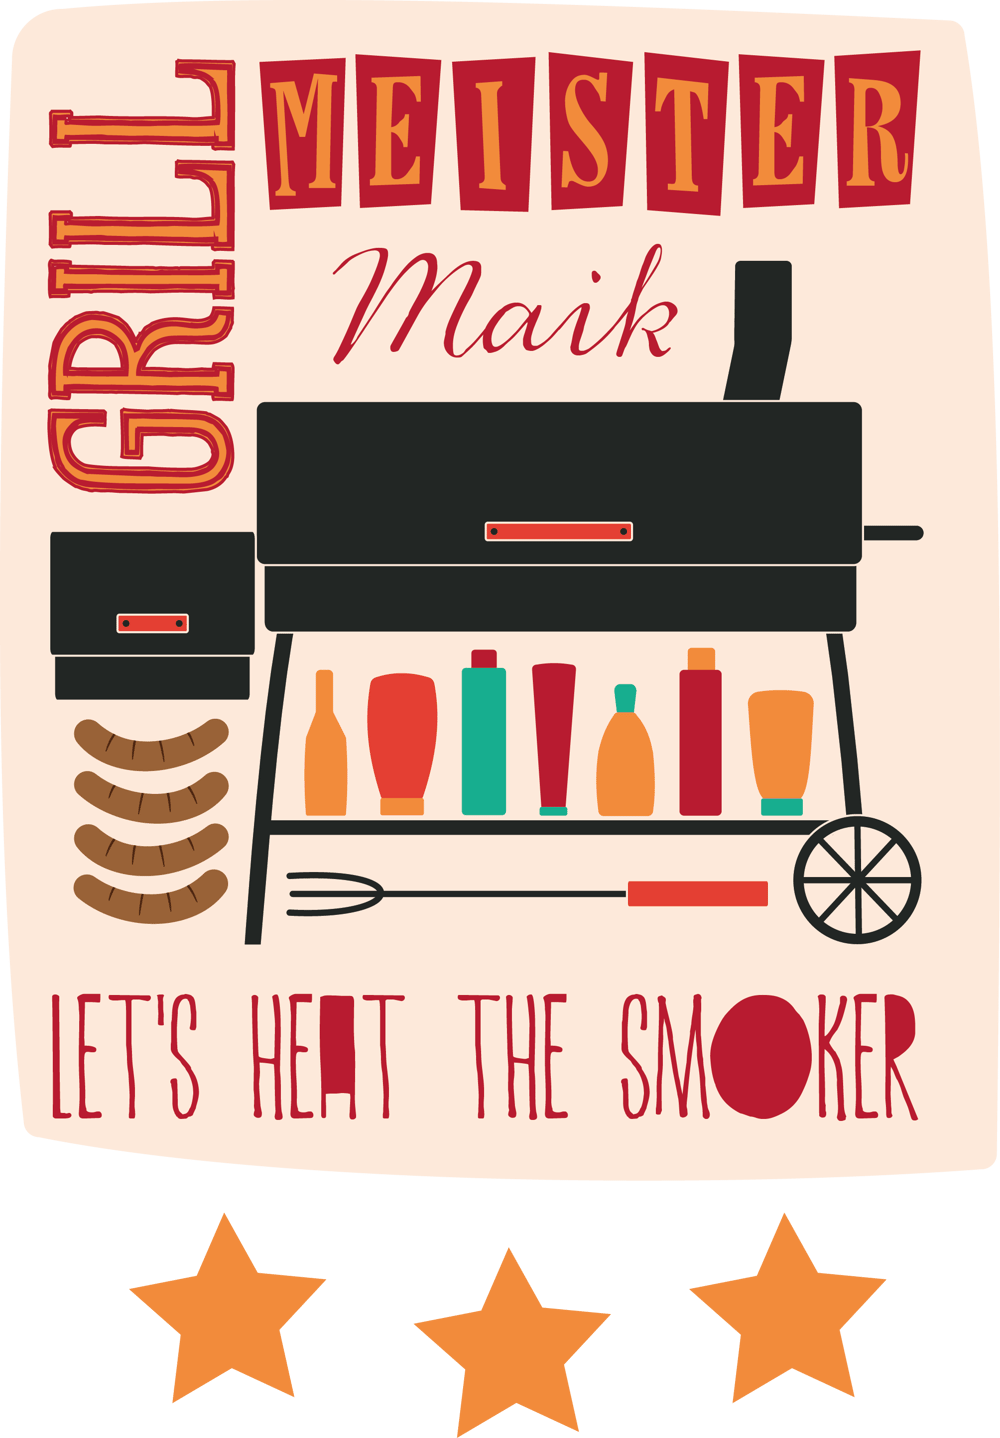 Illustration for a BBQ chef apron - image 3 - student project